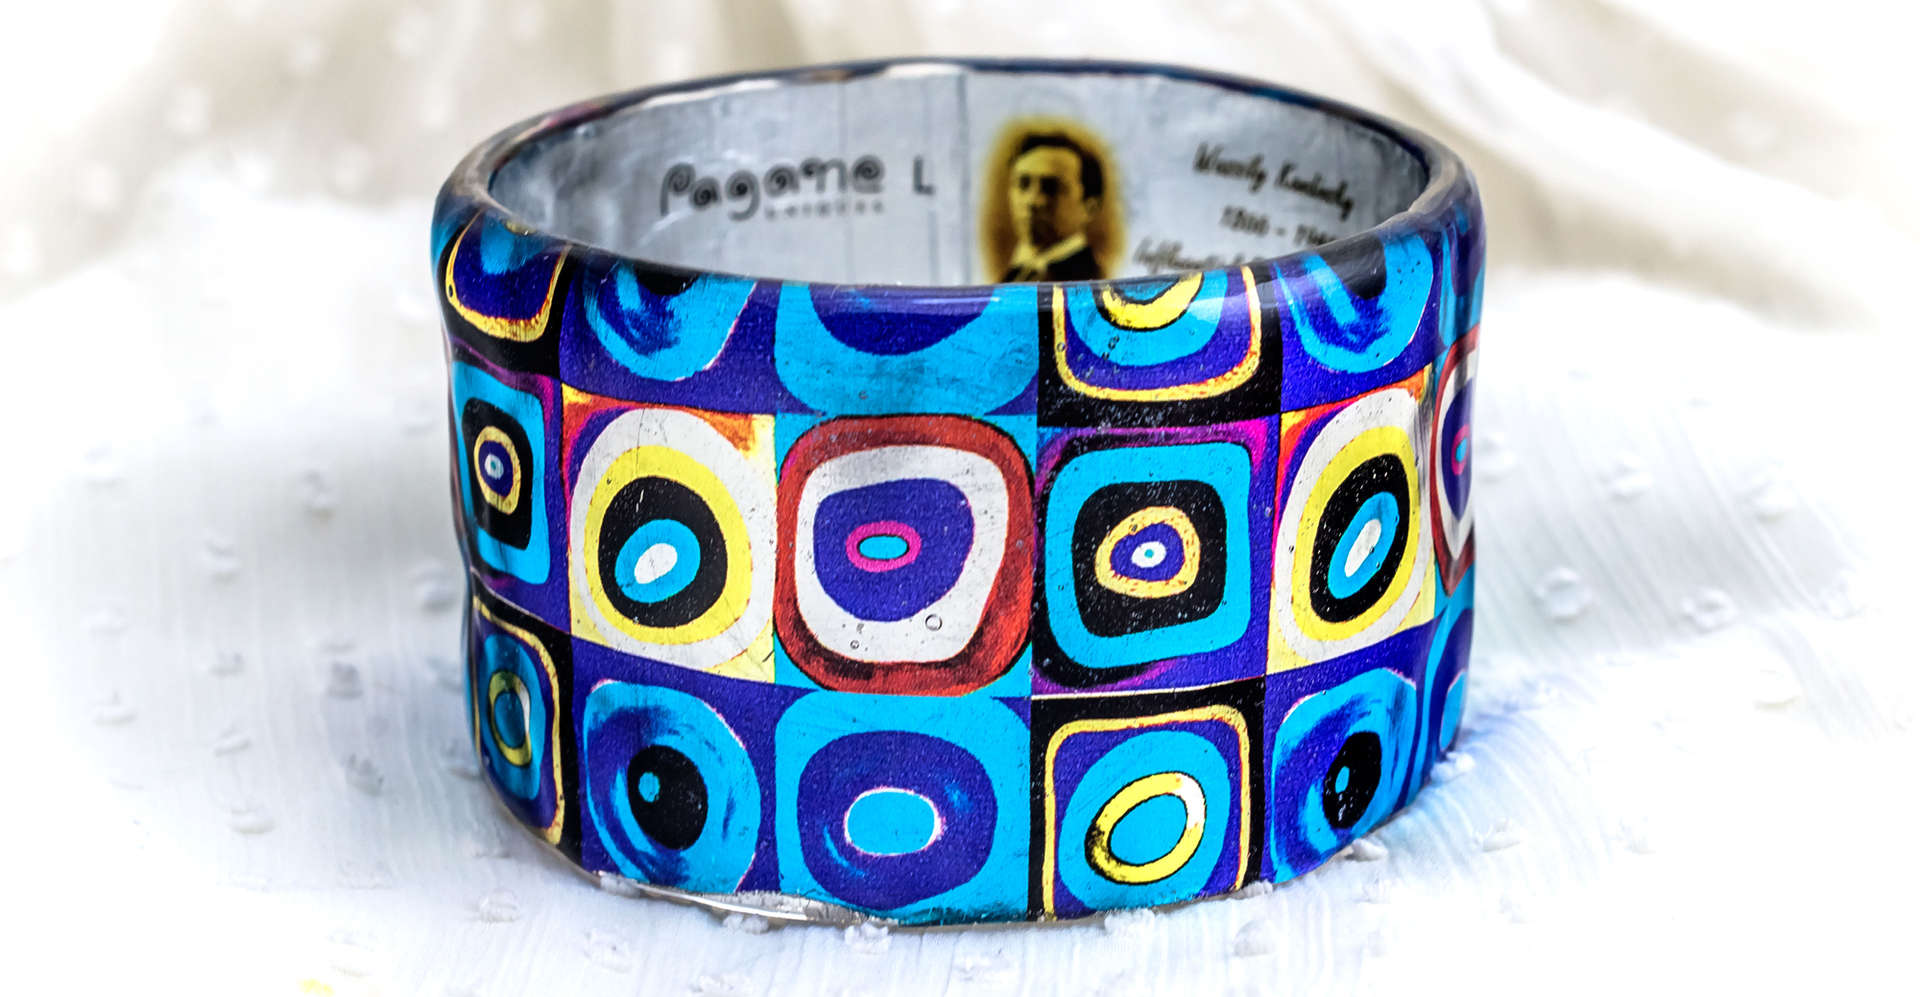 High Resin Bangle By PAGANE uniques (14)